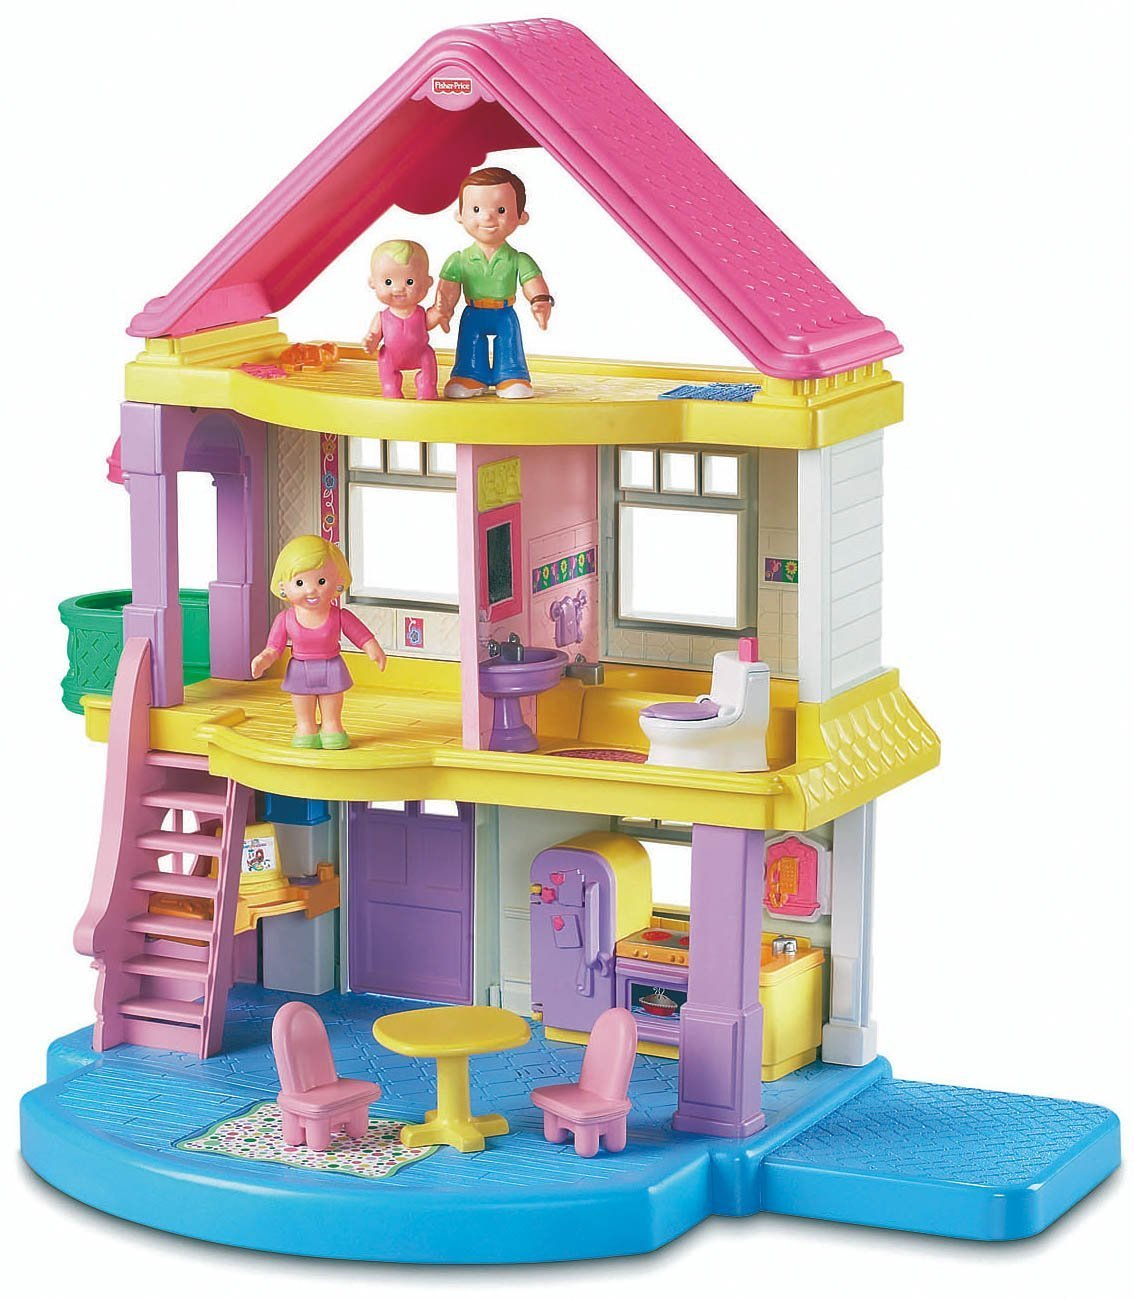 Fisher price doll house furniture - Fisher Price Doll House Furniture 25